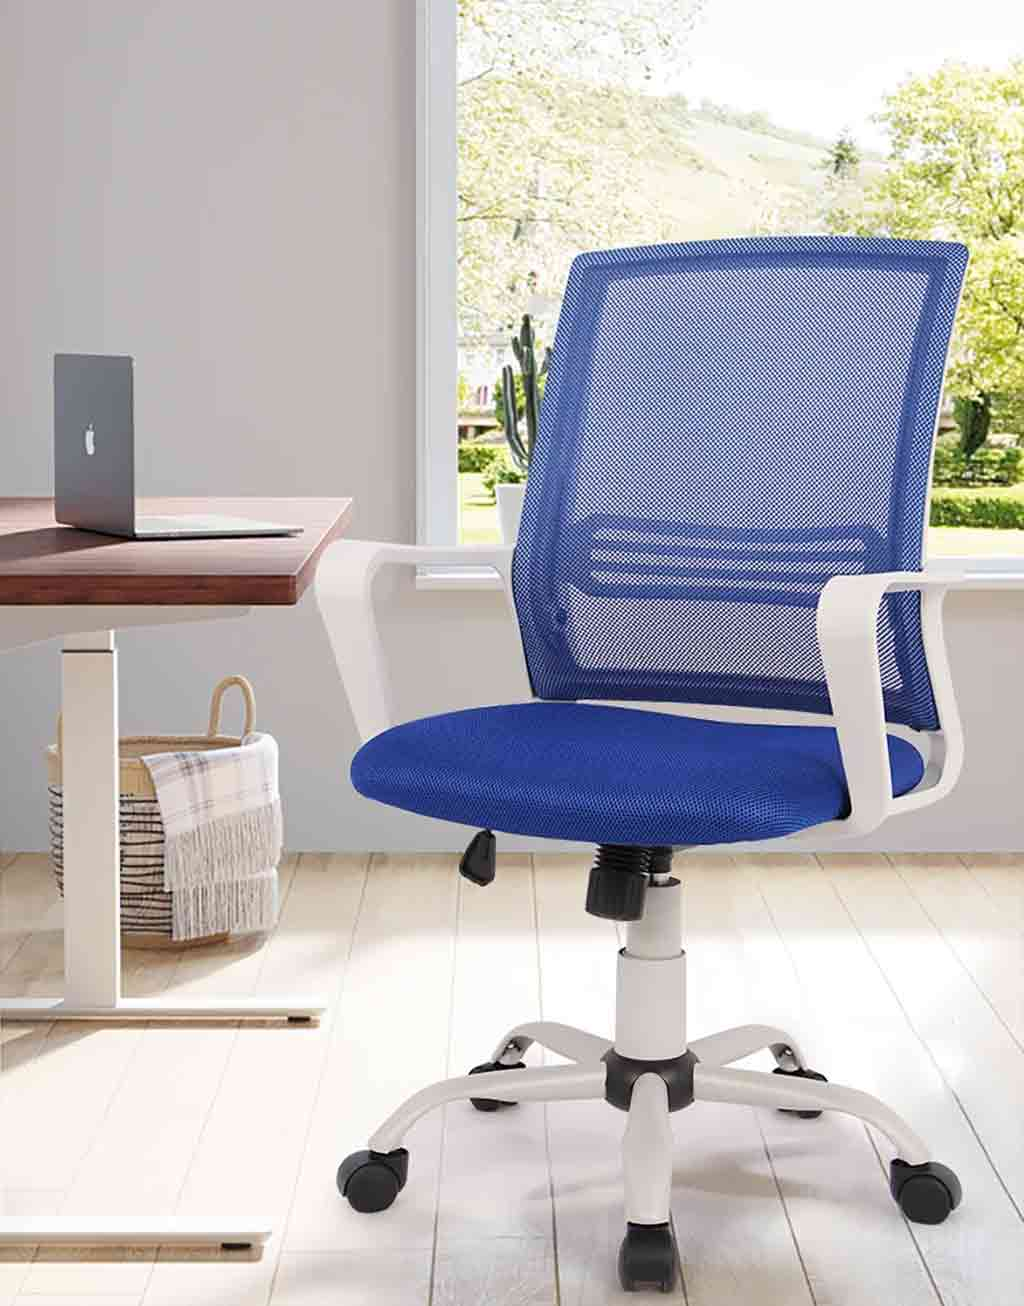 Best Chairs for Studying 6